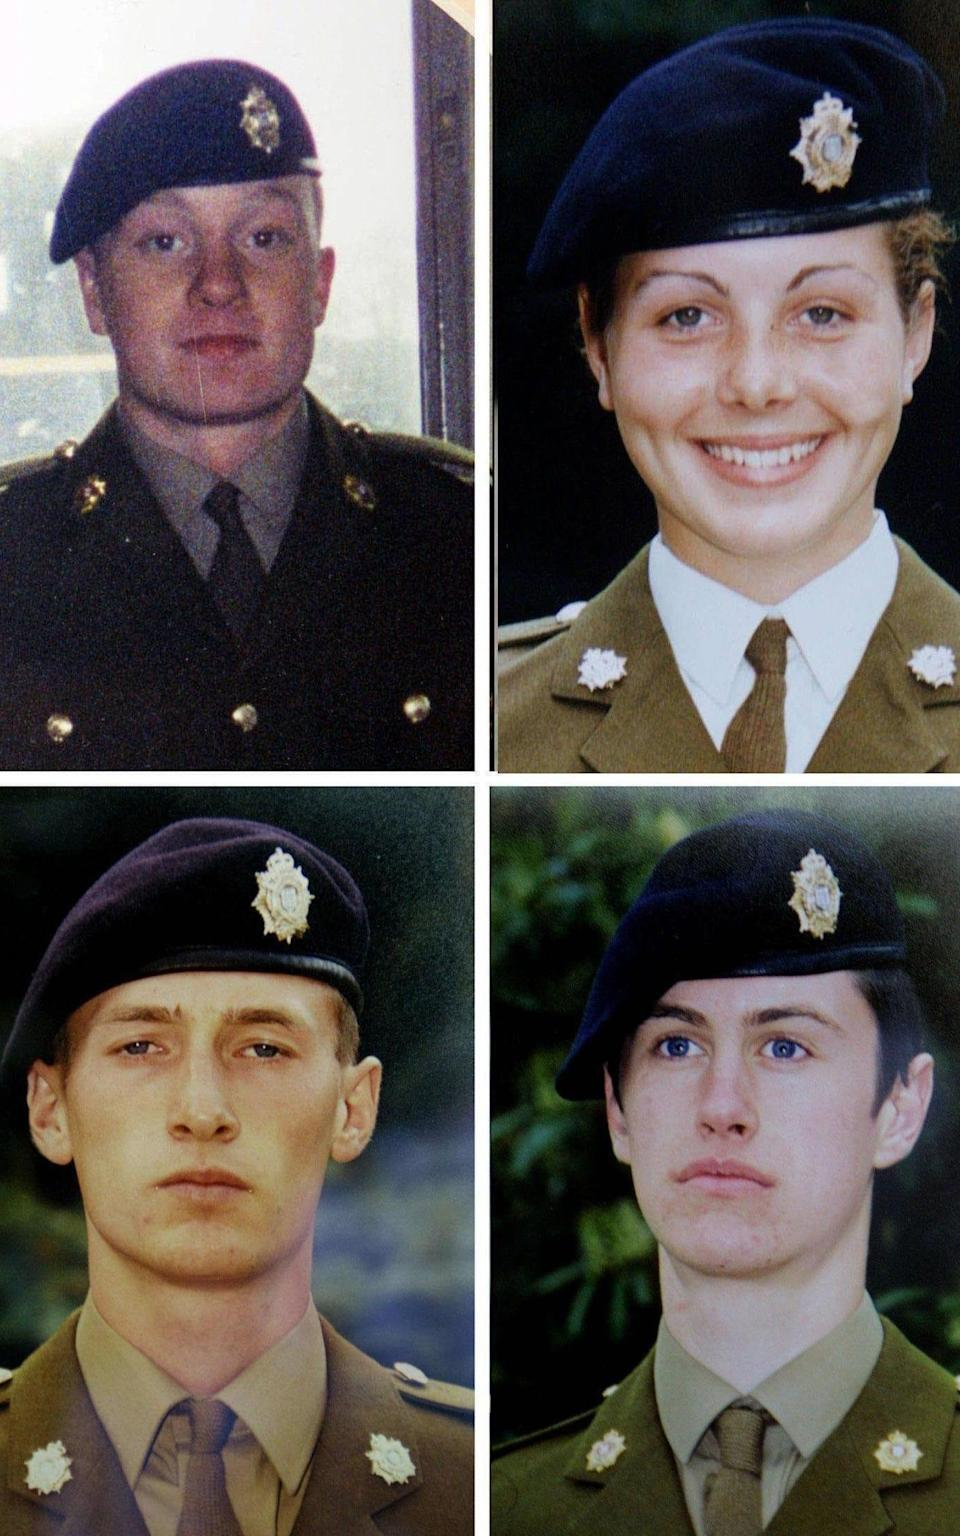 Composite of undated handout photos showing (clockwise from left to right) Private James Collinson, 17, from Perth, Private Cheryl James, 18, from Llangollen, North Wales, Private Sean Benton from Hastings, East Sussex and Private Geoff Gray, 17, from Hackney, east London, who all died at Deepcut army barracks in Surrey, as a two-decade fight for justice will finally come to an end for Cheryl's family on Friday when a coroner delivers the long-awaited ruling into how she died at Deepcut Army barracks. PRESS ASSOCIATION Photo. Issue date: Friday June 3, 2016. Pte James, 18, was found with a bullet wound to her head on November 27 1995 while she was undergoing initial training at the Surrey base. See PA story INQUEST Deepcut. Photo credit should read: PA Wire NOTE TO EDITORS: This handout photo may only be used in for editorial reporting purposes for the contemporaneous illustration of events, things or the people in the image or facts mentioned in the caption. Reuse of the picture may require further permission from the copyright holder. - PA